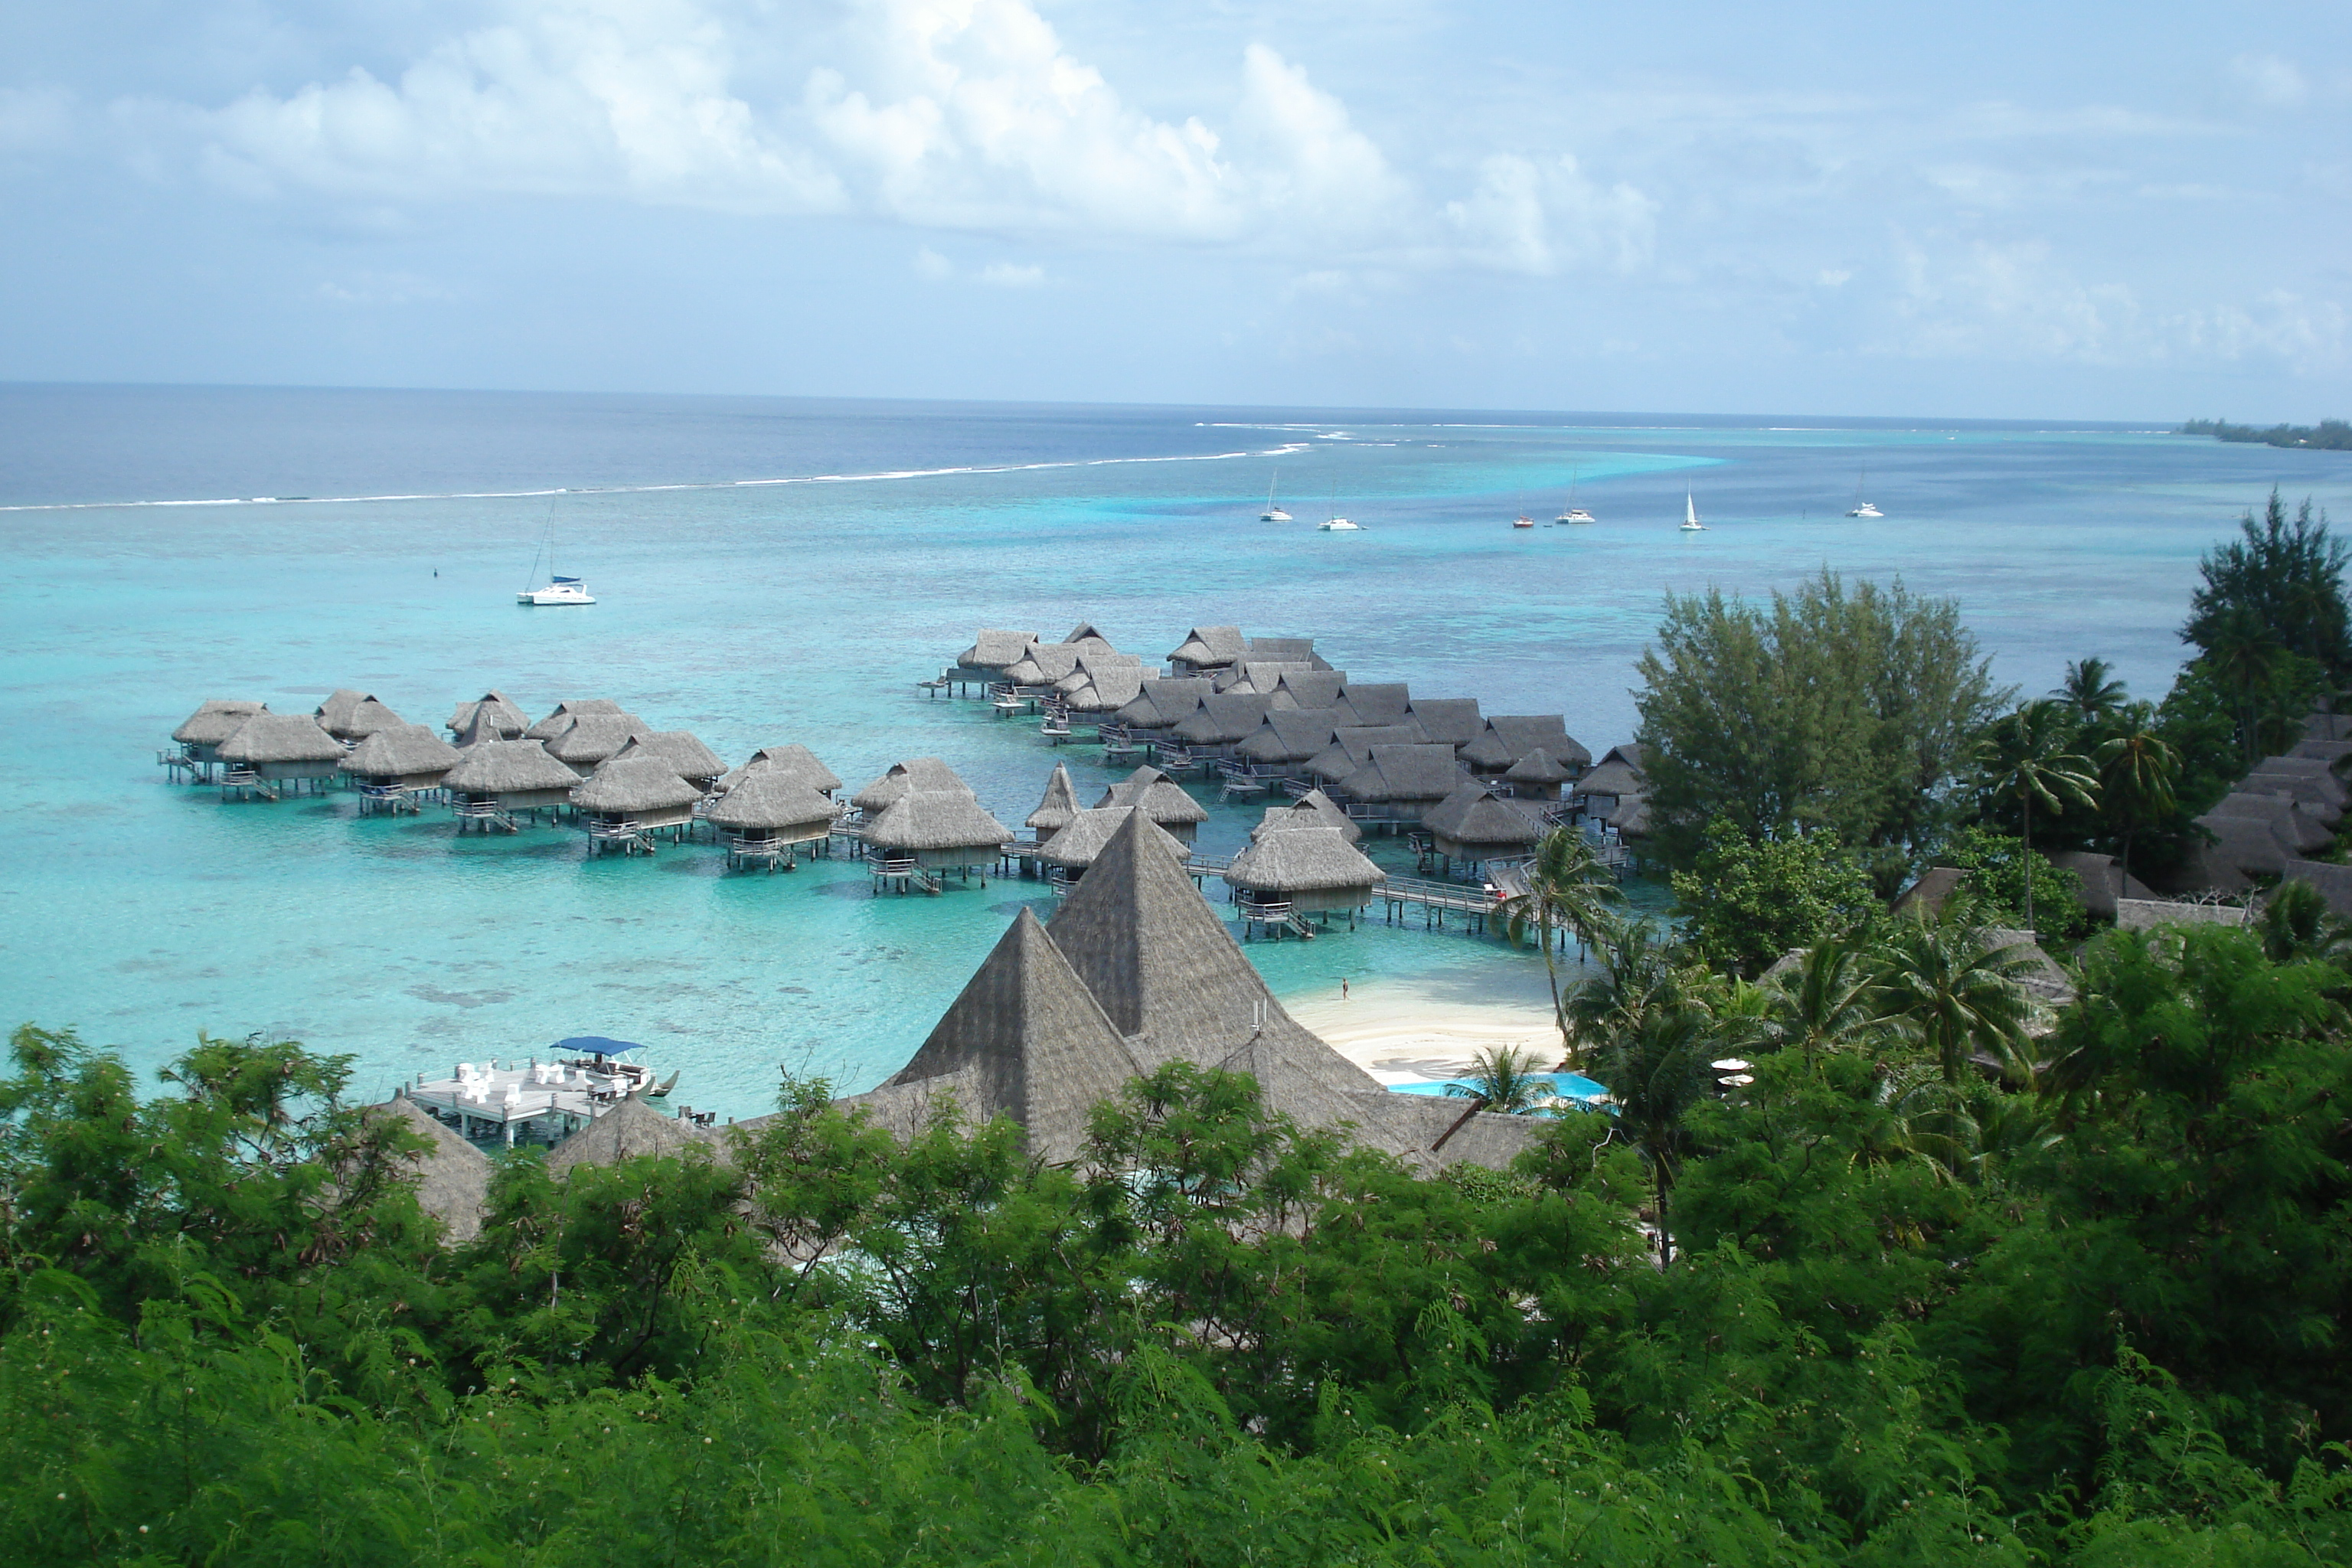 Bungalows line the beach in Moorea.